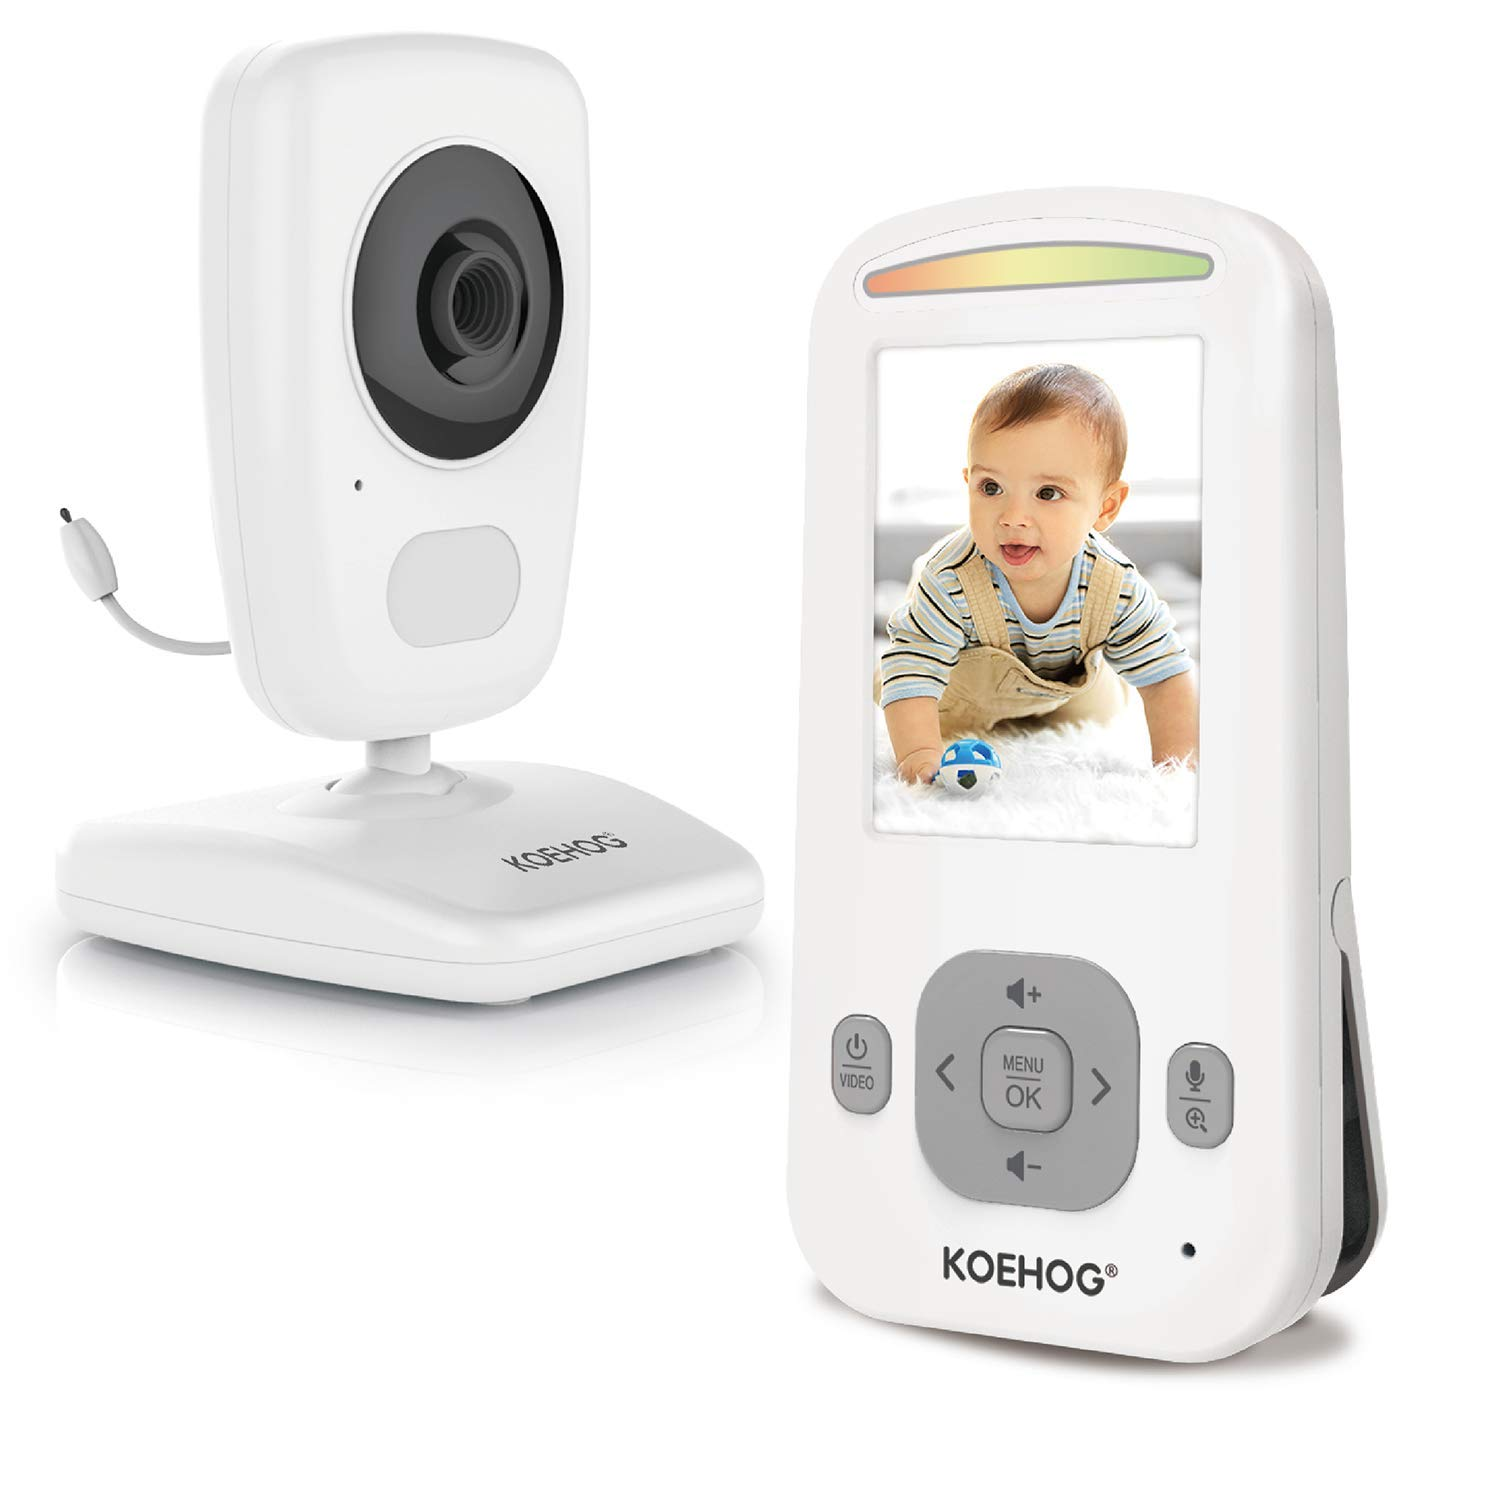 Baby Monitor w/Spectacular Vertical Screen, Slim-Designed Handheld, Extra Long Range, Secure Wireless Technology, Camera Built-in Auto Night Vision, Temperature Alert